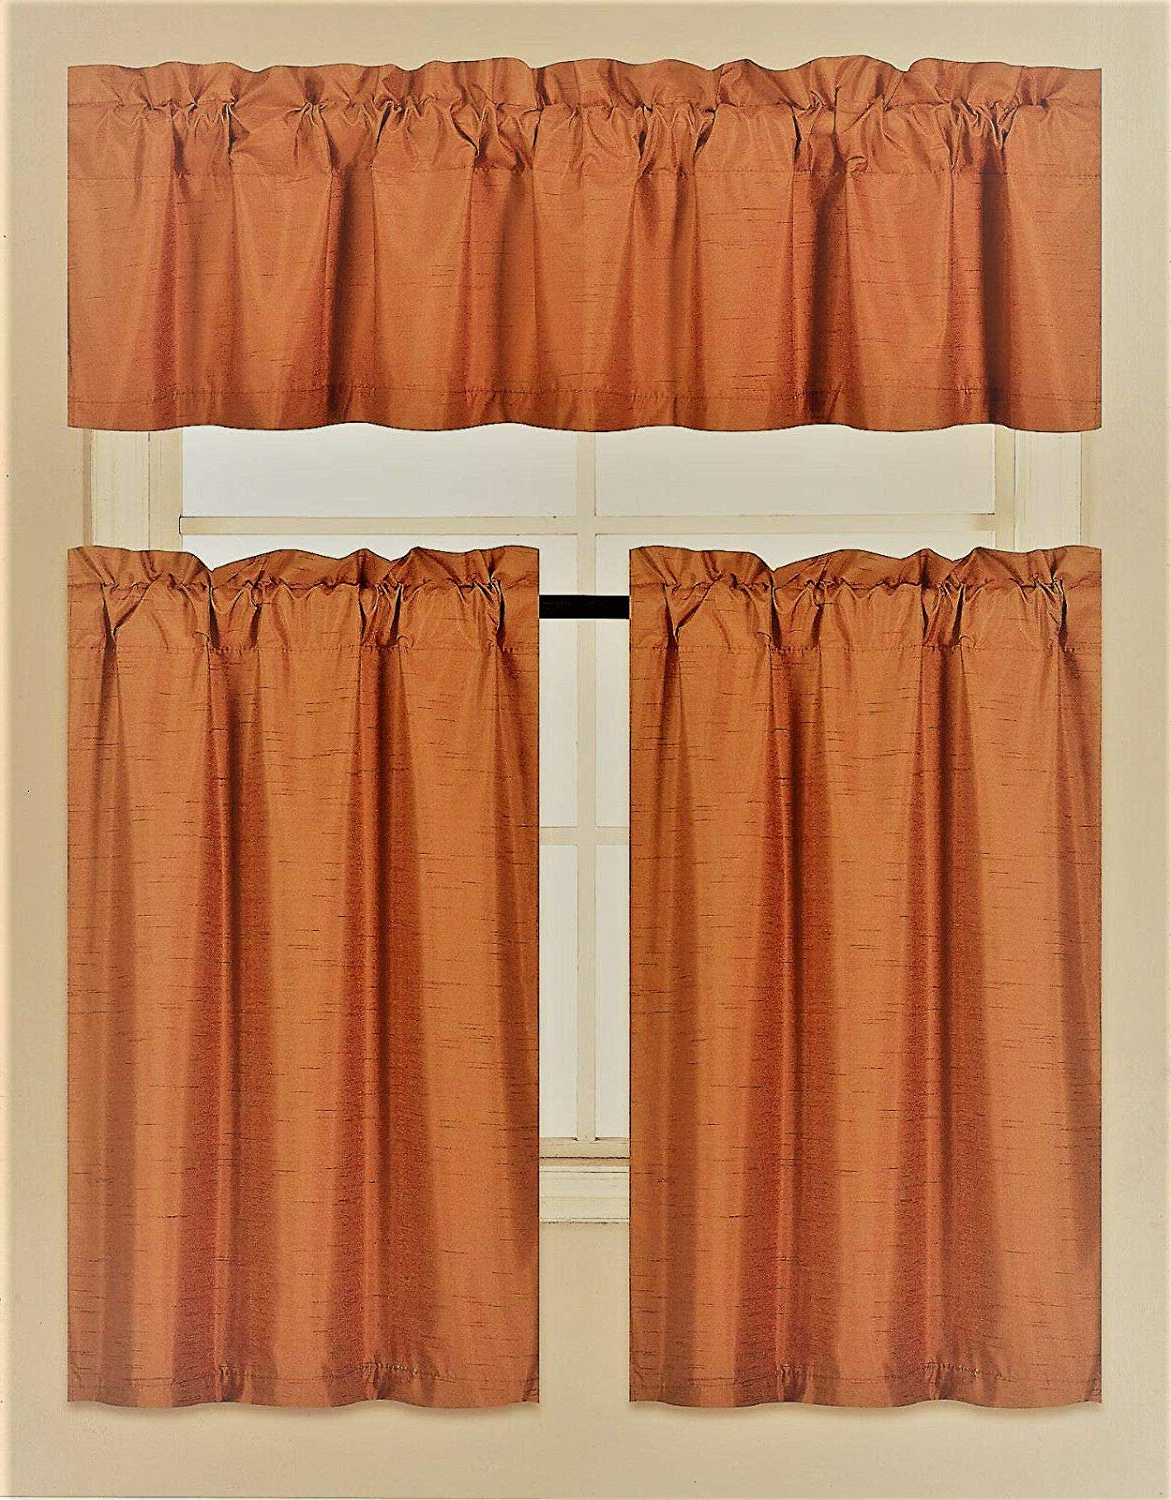 Solid Microfiber 3 Piece Kitchen Curtain Valance And Tiers Sets For Latest Diamondhome 3 Piece Faux Silk Blackout Kitchen Window Curtain Set 2 Tiers & 1 Valance Lined Thermal Blackout Drape Window Treatment (Burgundy) (View 20 of 20)